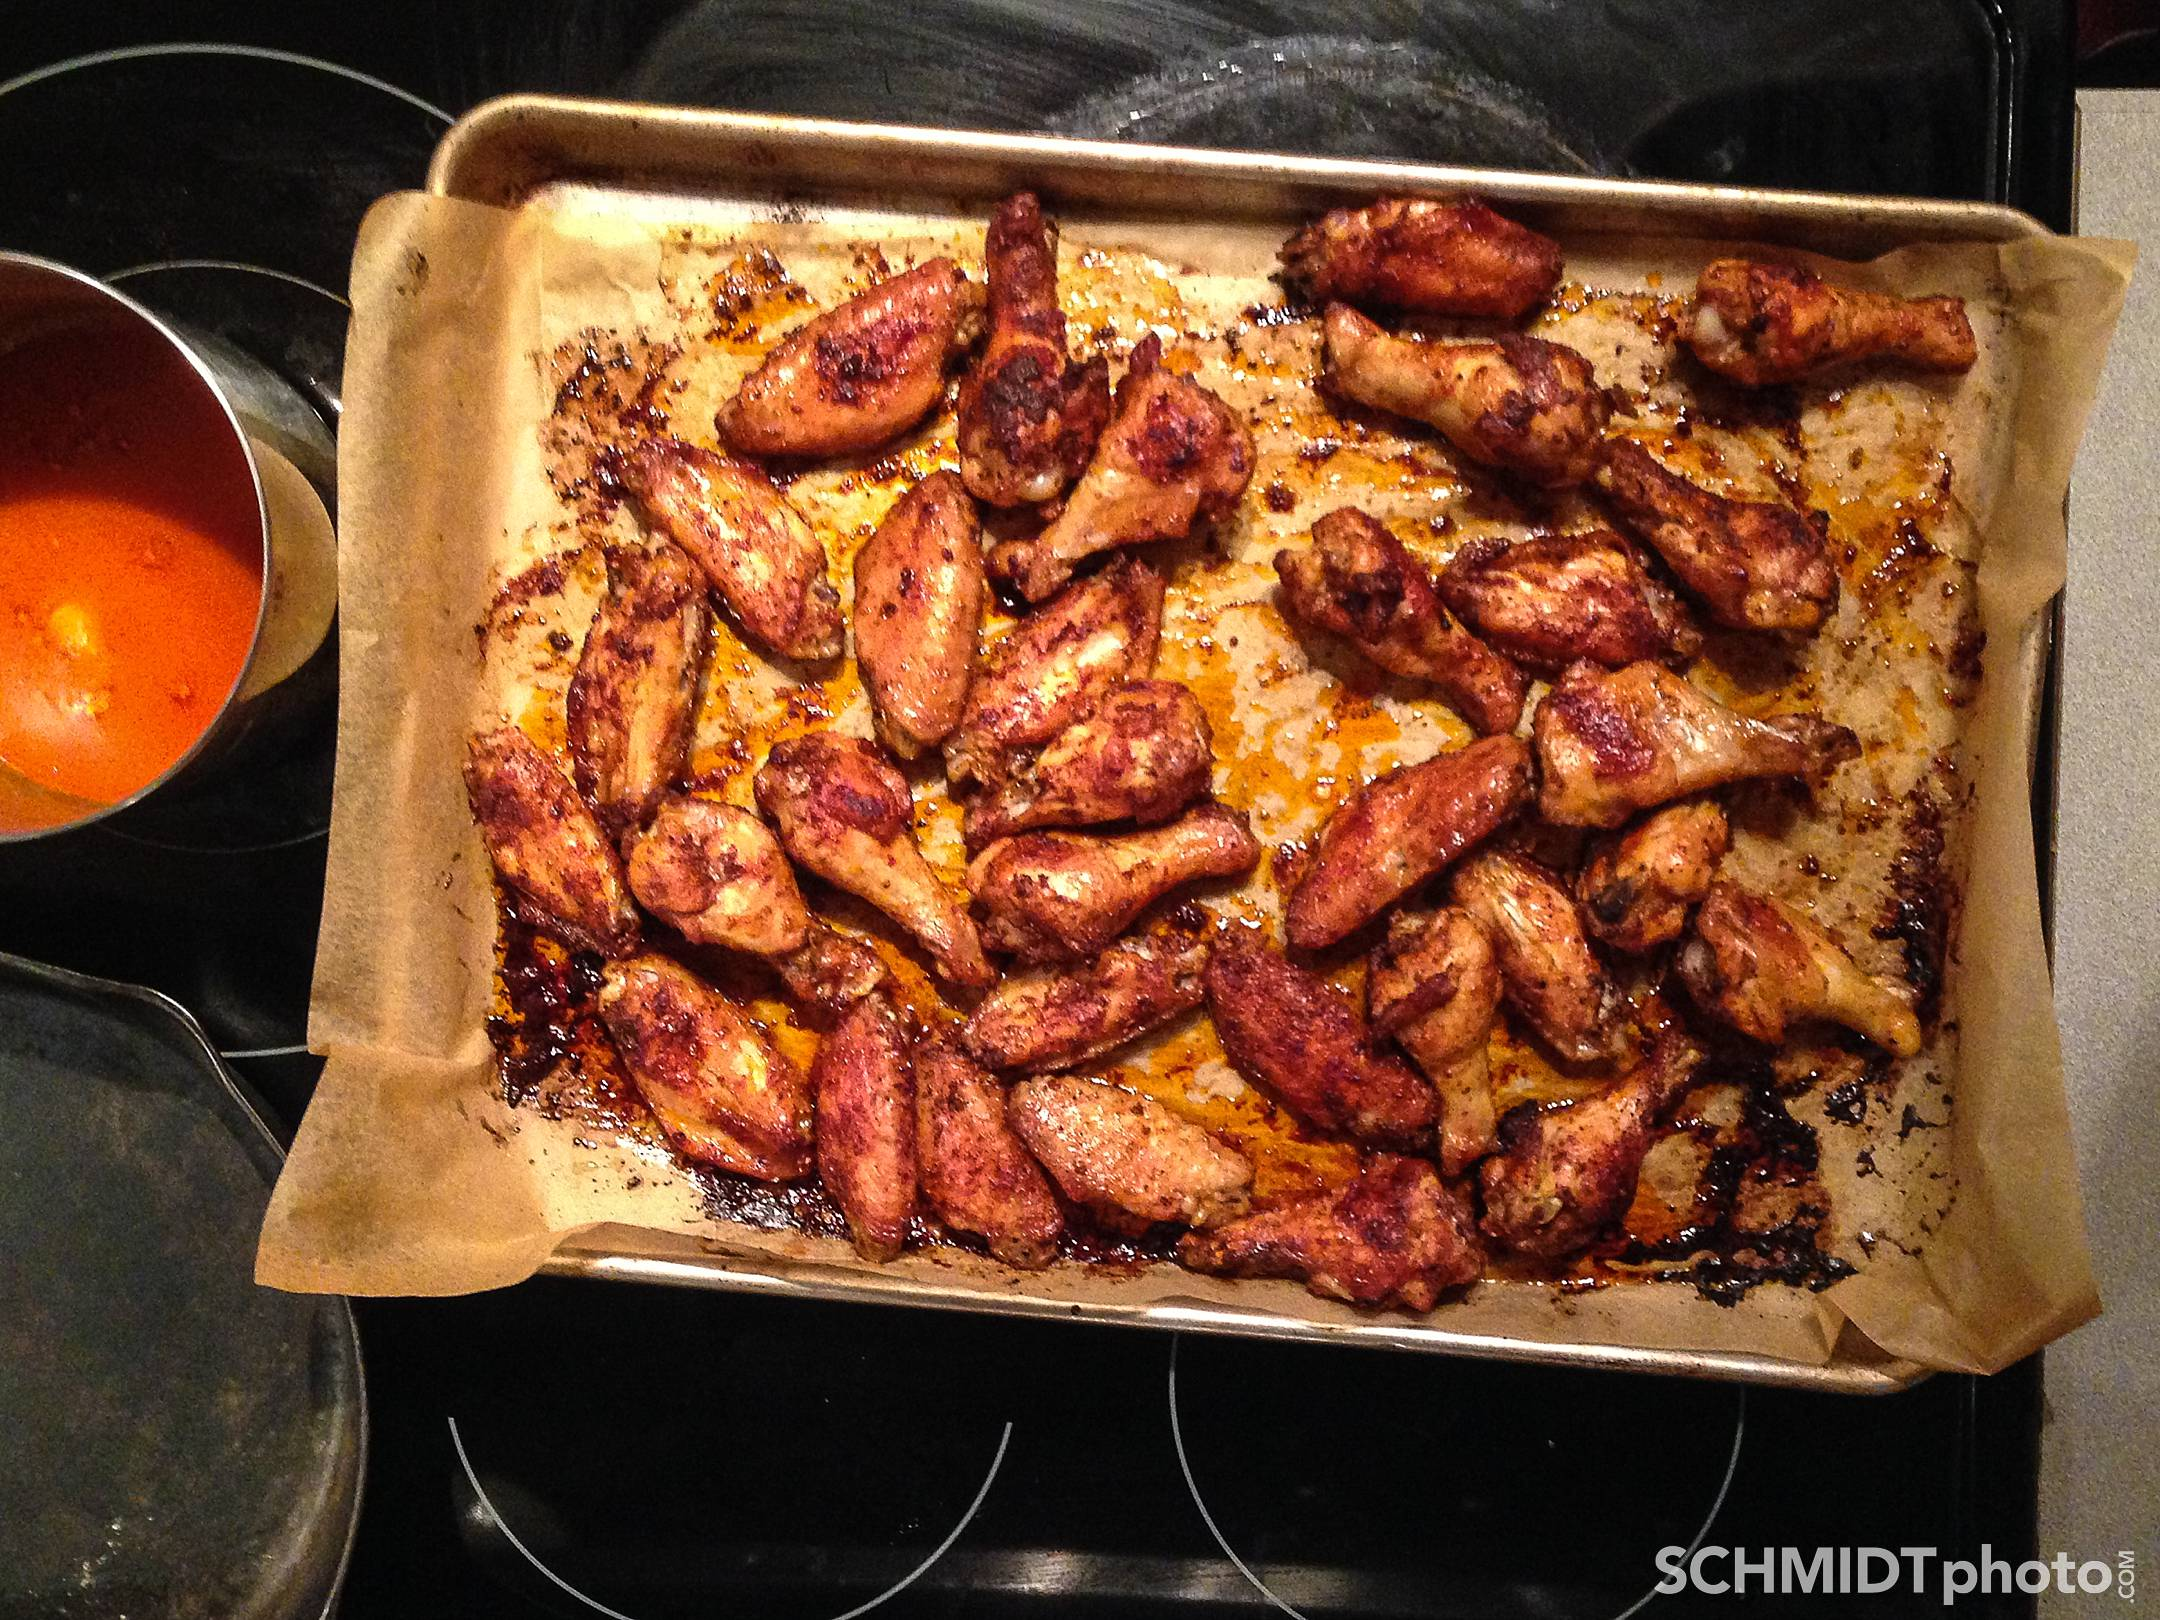 Hot wings chicken oven roasted tom schmidt photo